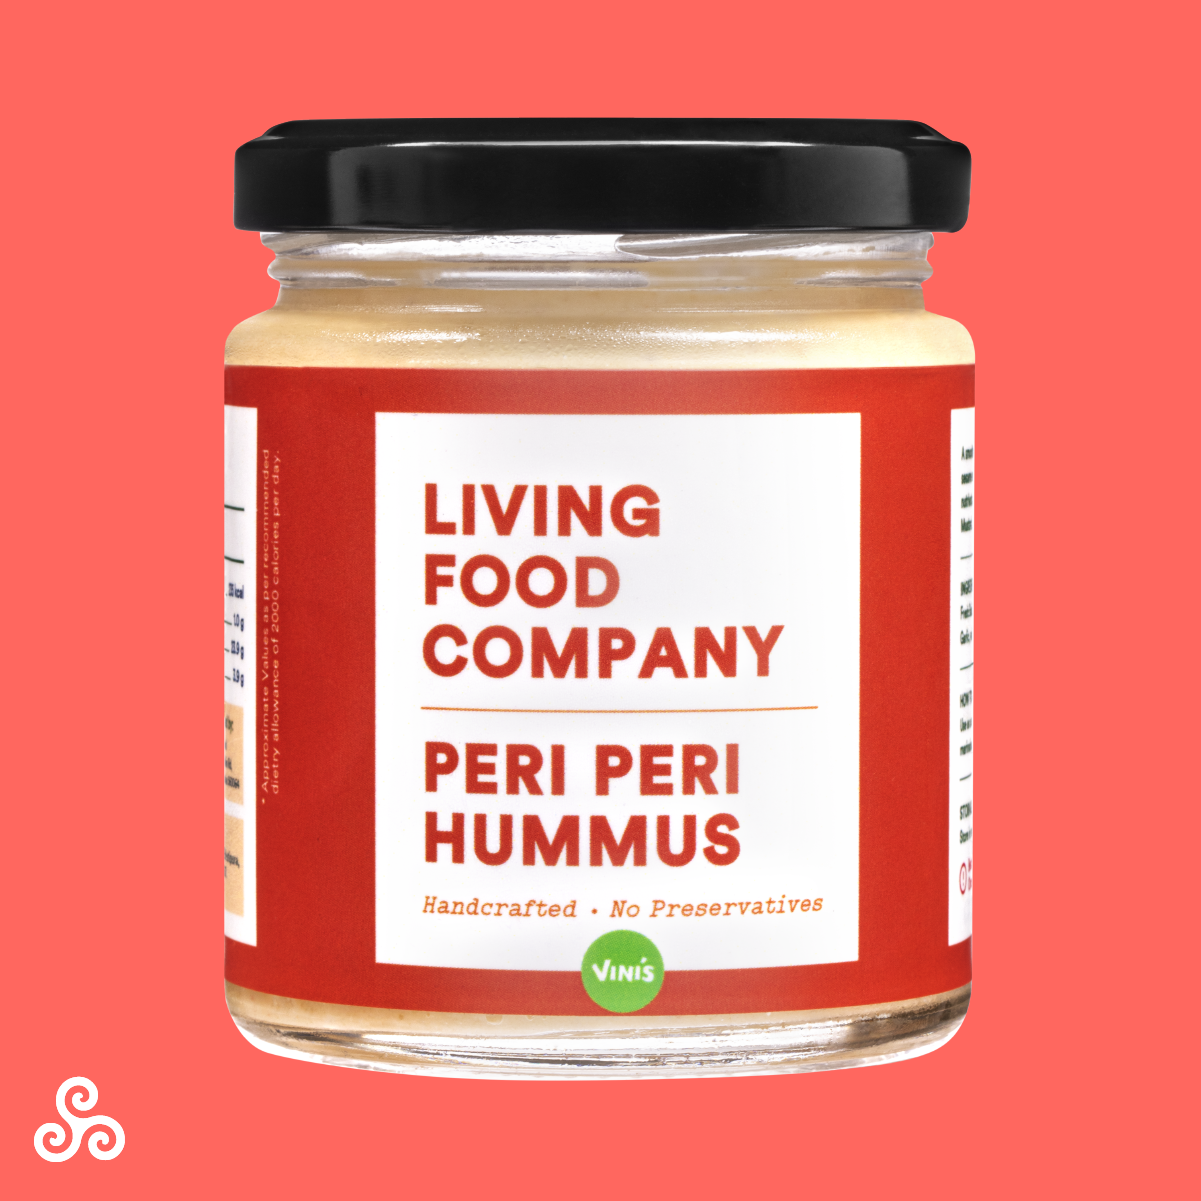 https://livingfood.co/collections/spreads-and-butter/products/peri-peri-hummus-freshly-made-pre-order-only